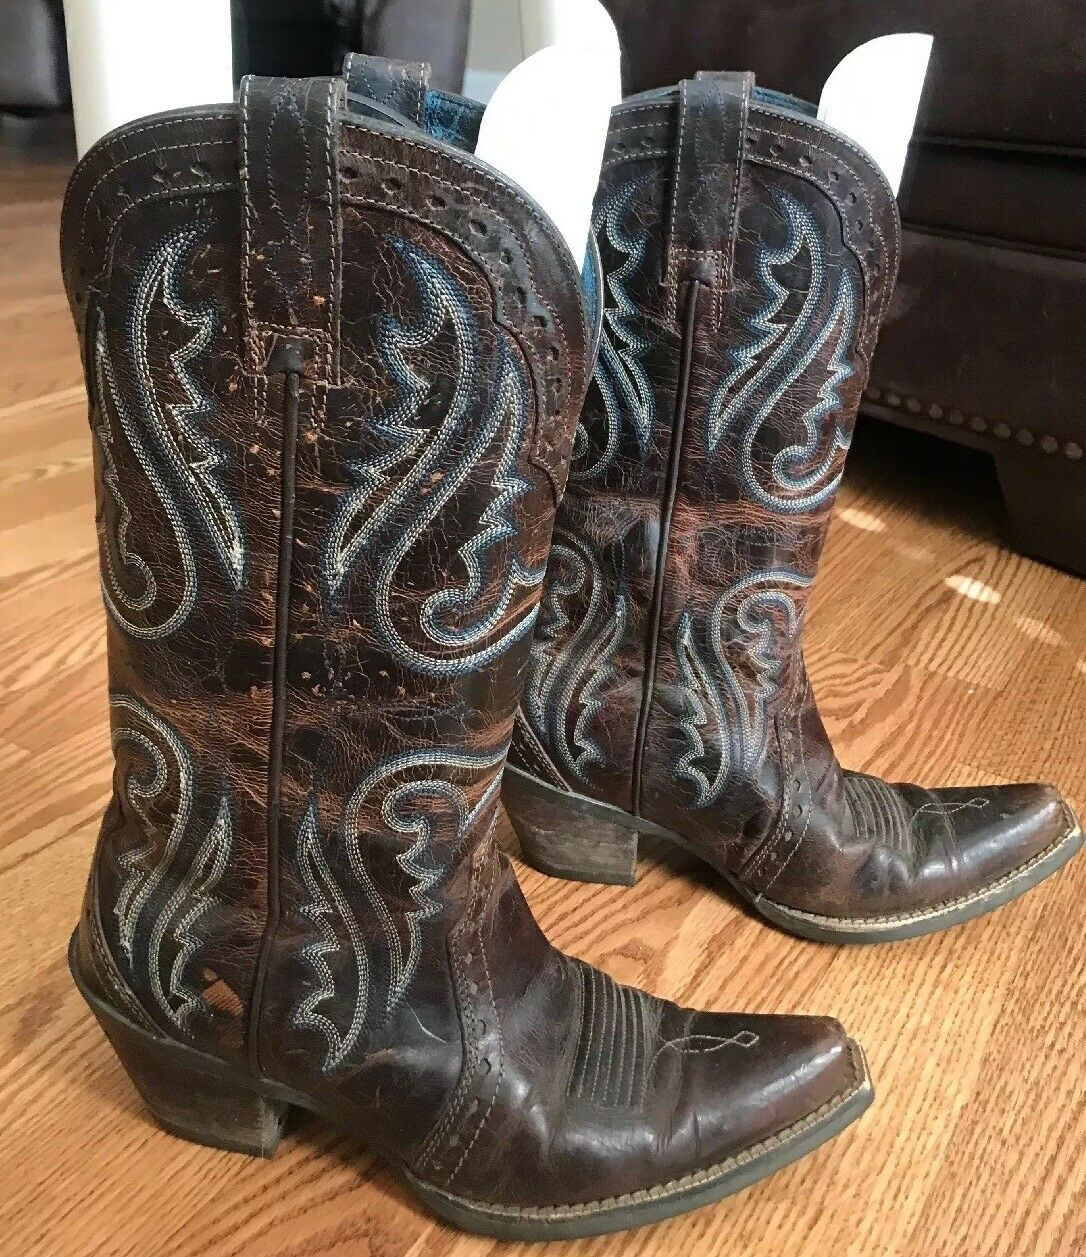 Ladies ARIAT Western Cowboy Cowboy Cowboy Boots Size 6.5 Very Good Used Condition. a5531b